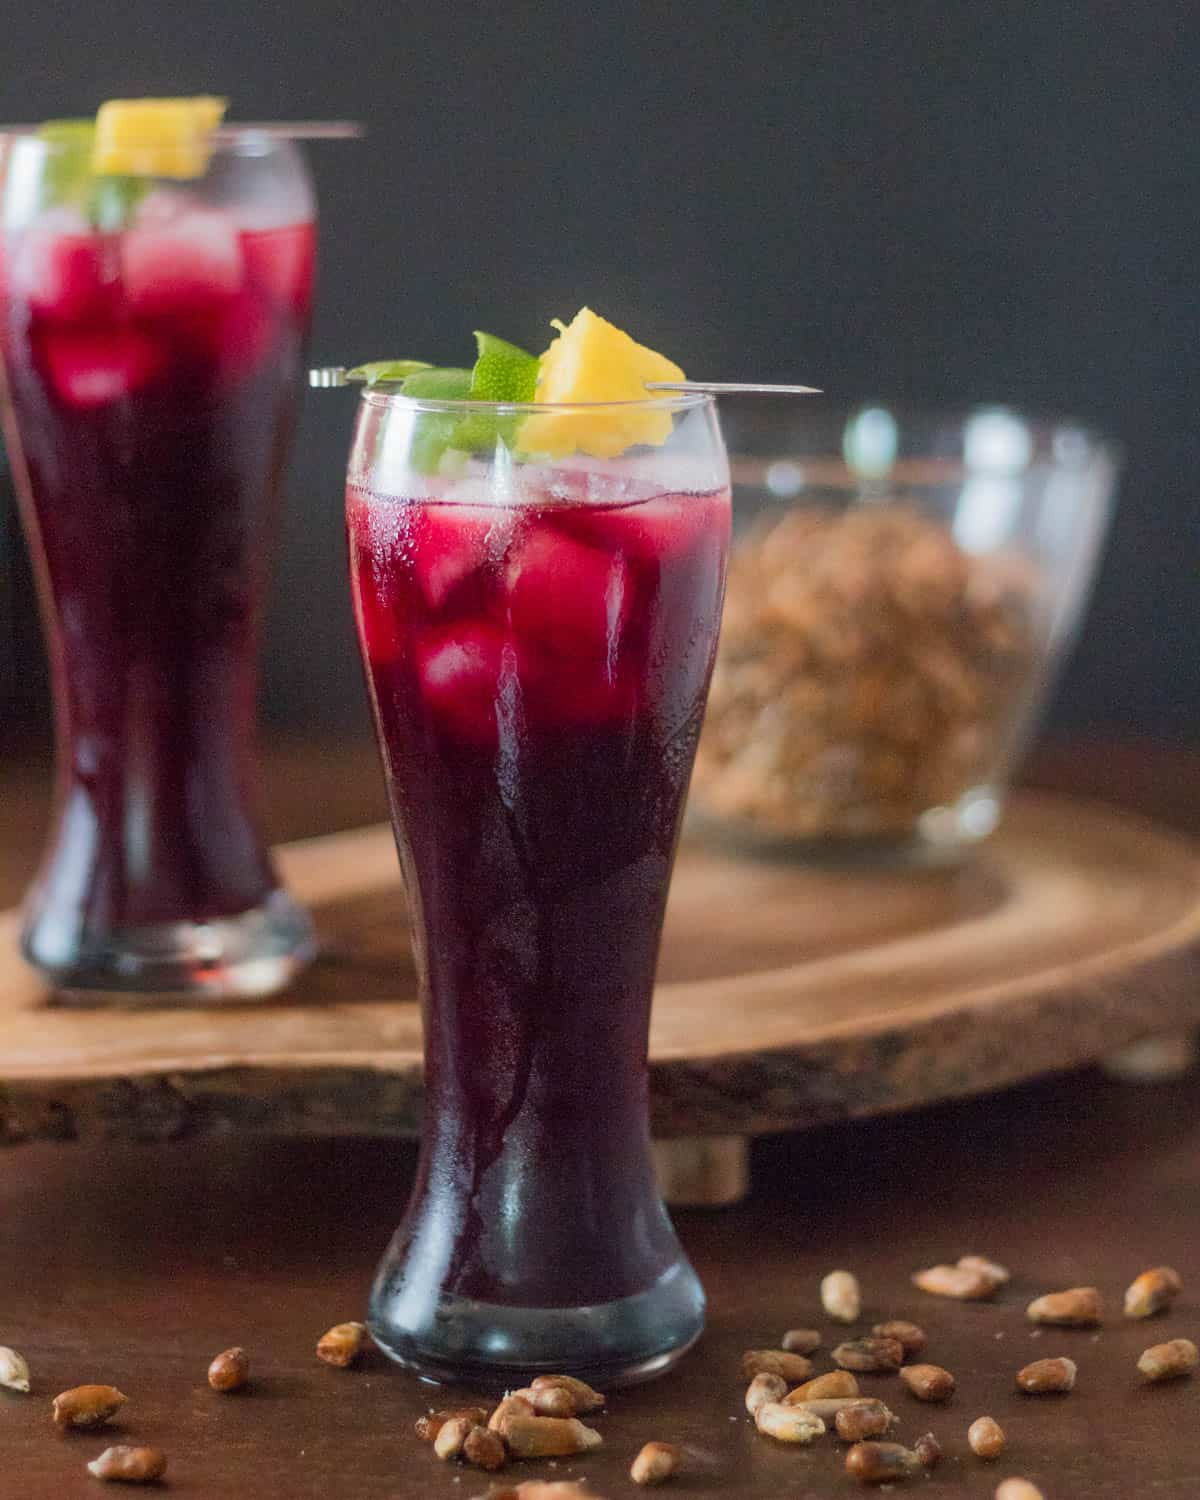 2 glasses of Peruvian chicha morada, a bowl of cancha, on a wood cutting board with a dark background.